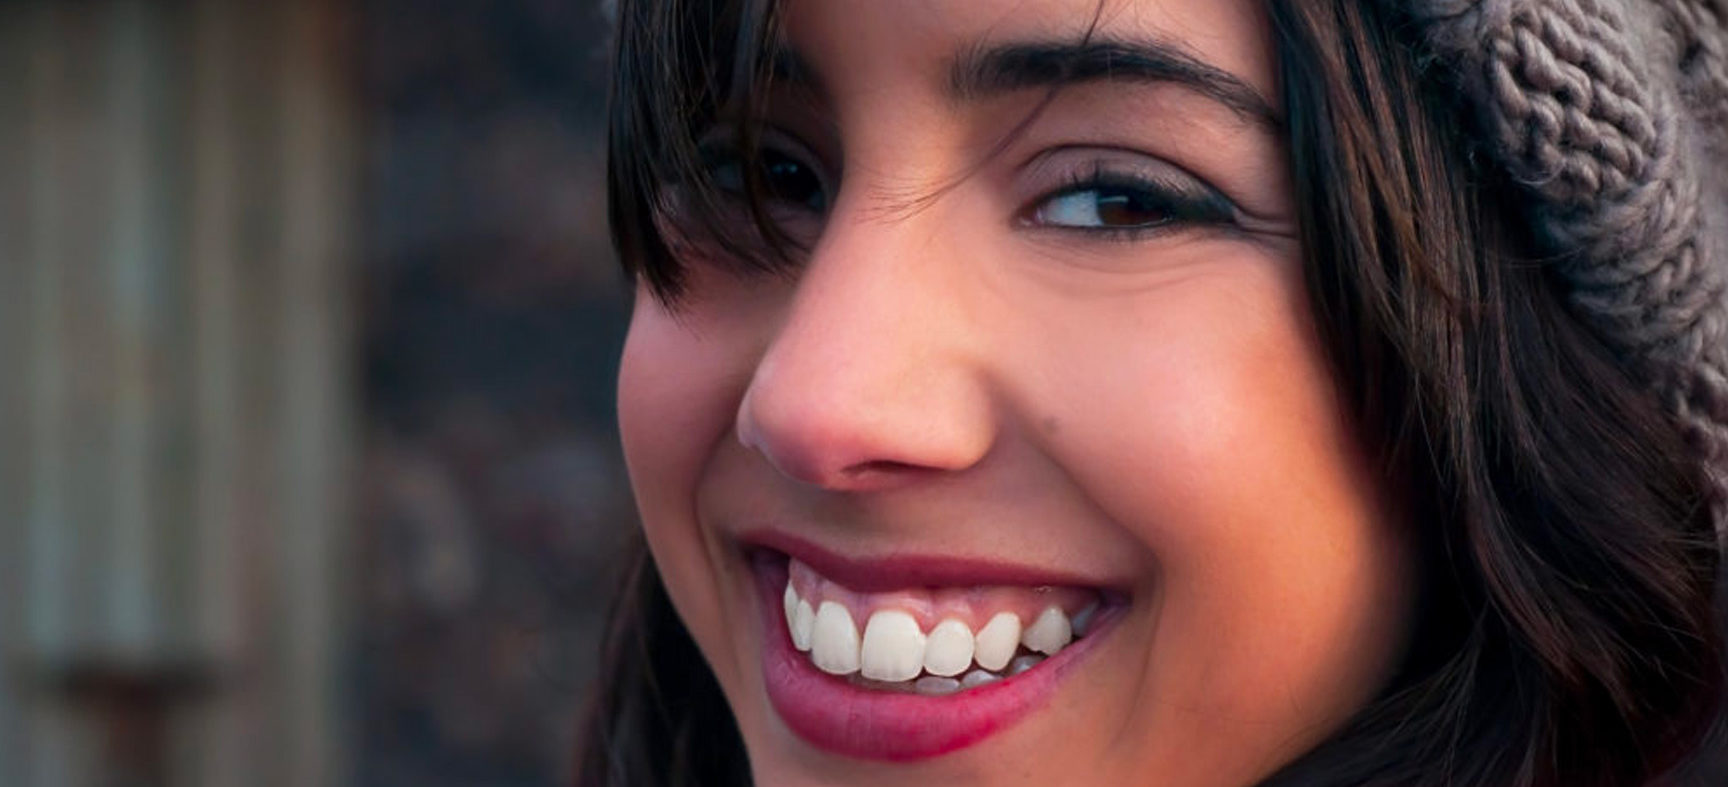 Teeth Whitening: Home Bleaching, Dentists And Laser Whitening – How To Choose